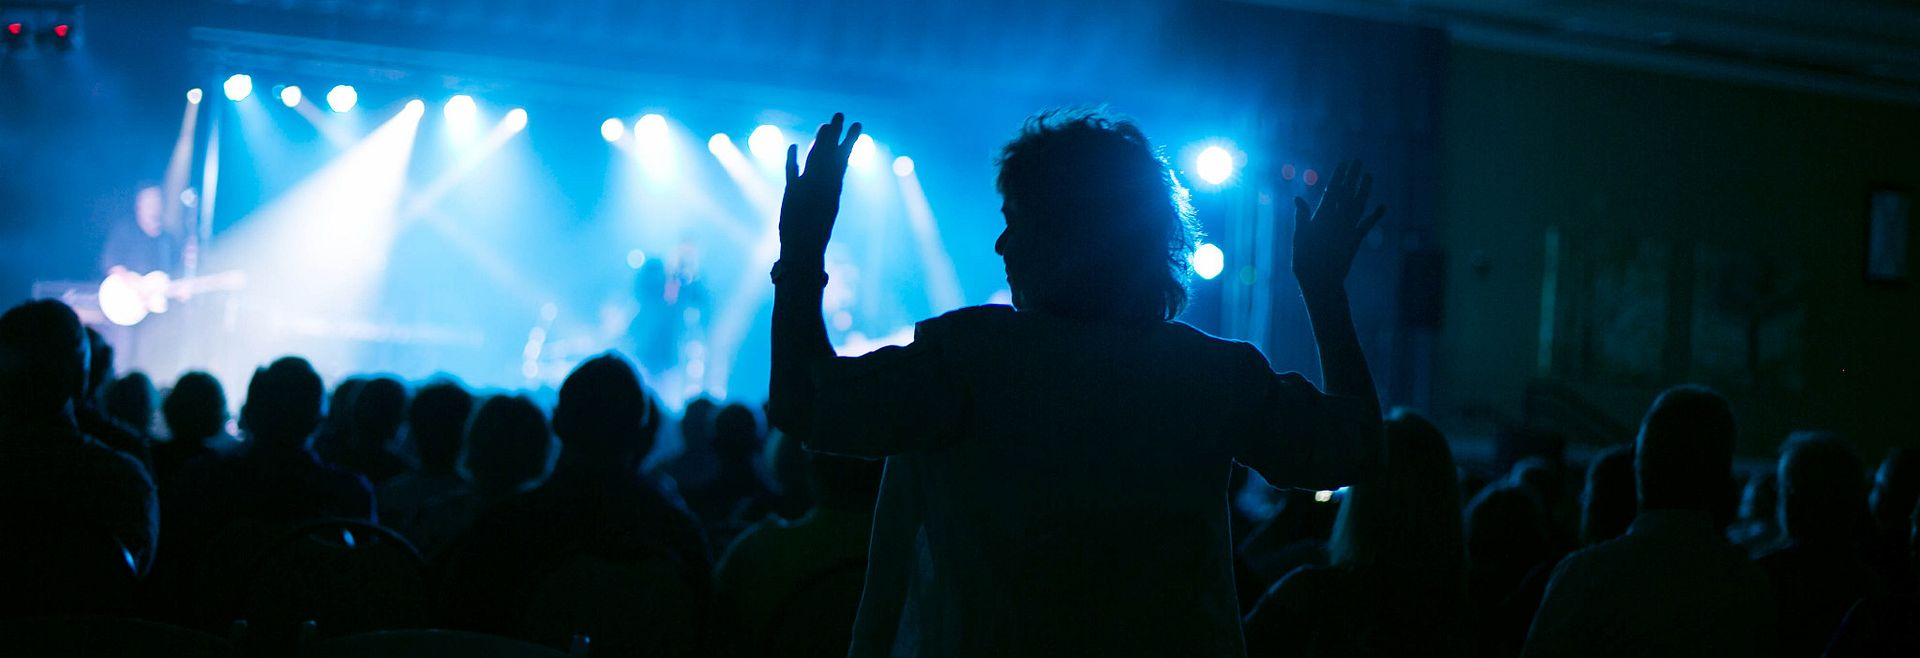 Lady Dancing at a Concert in Event Center